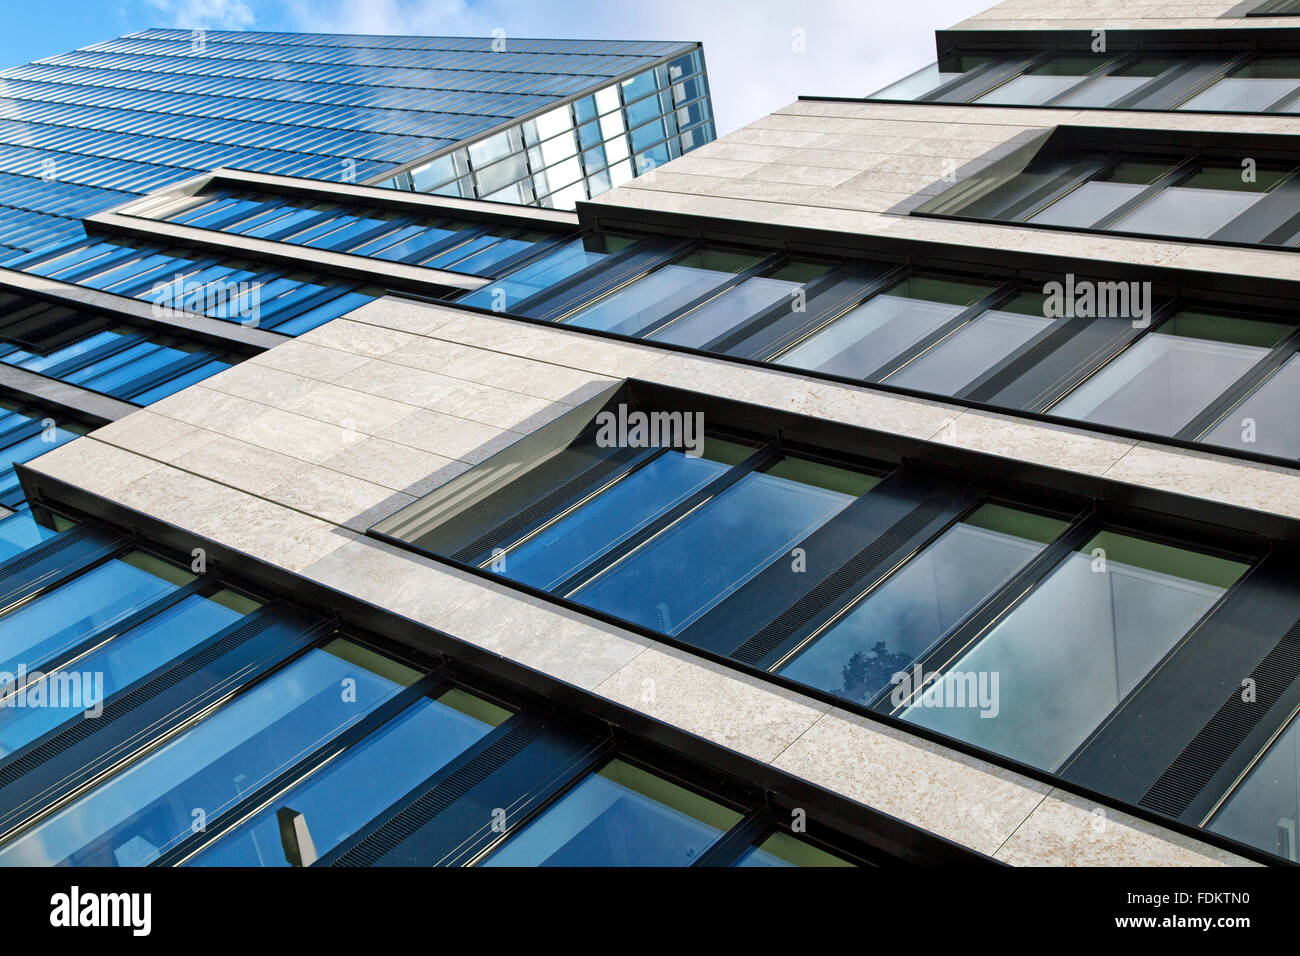 office building - Stock Image